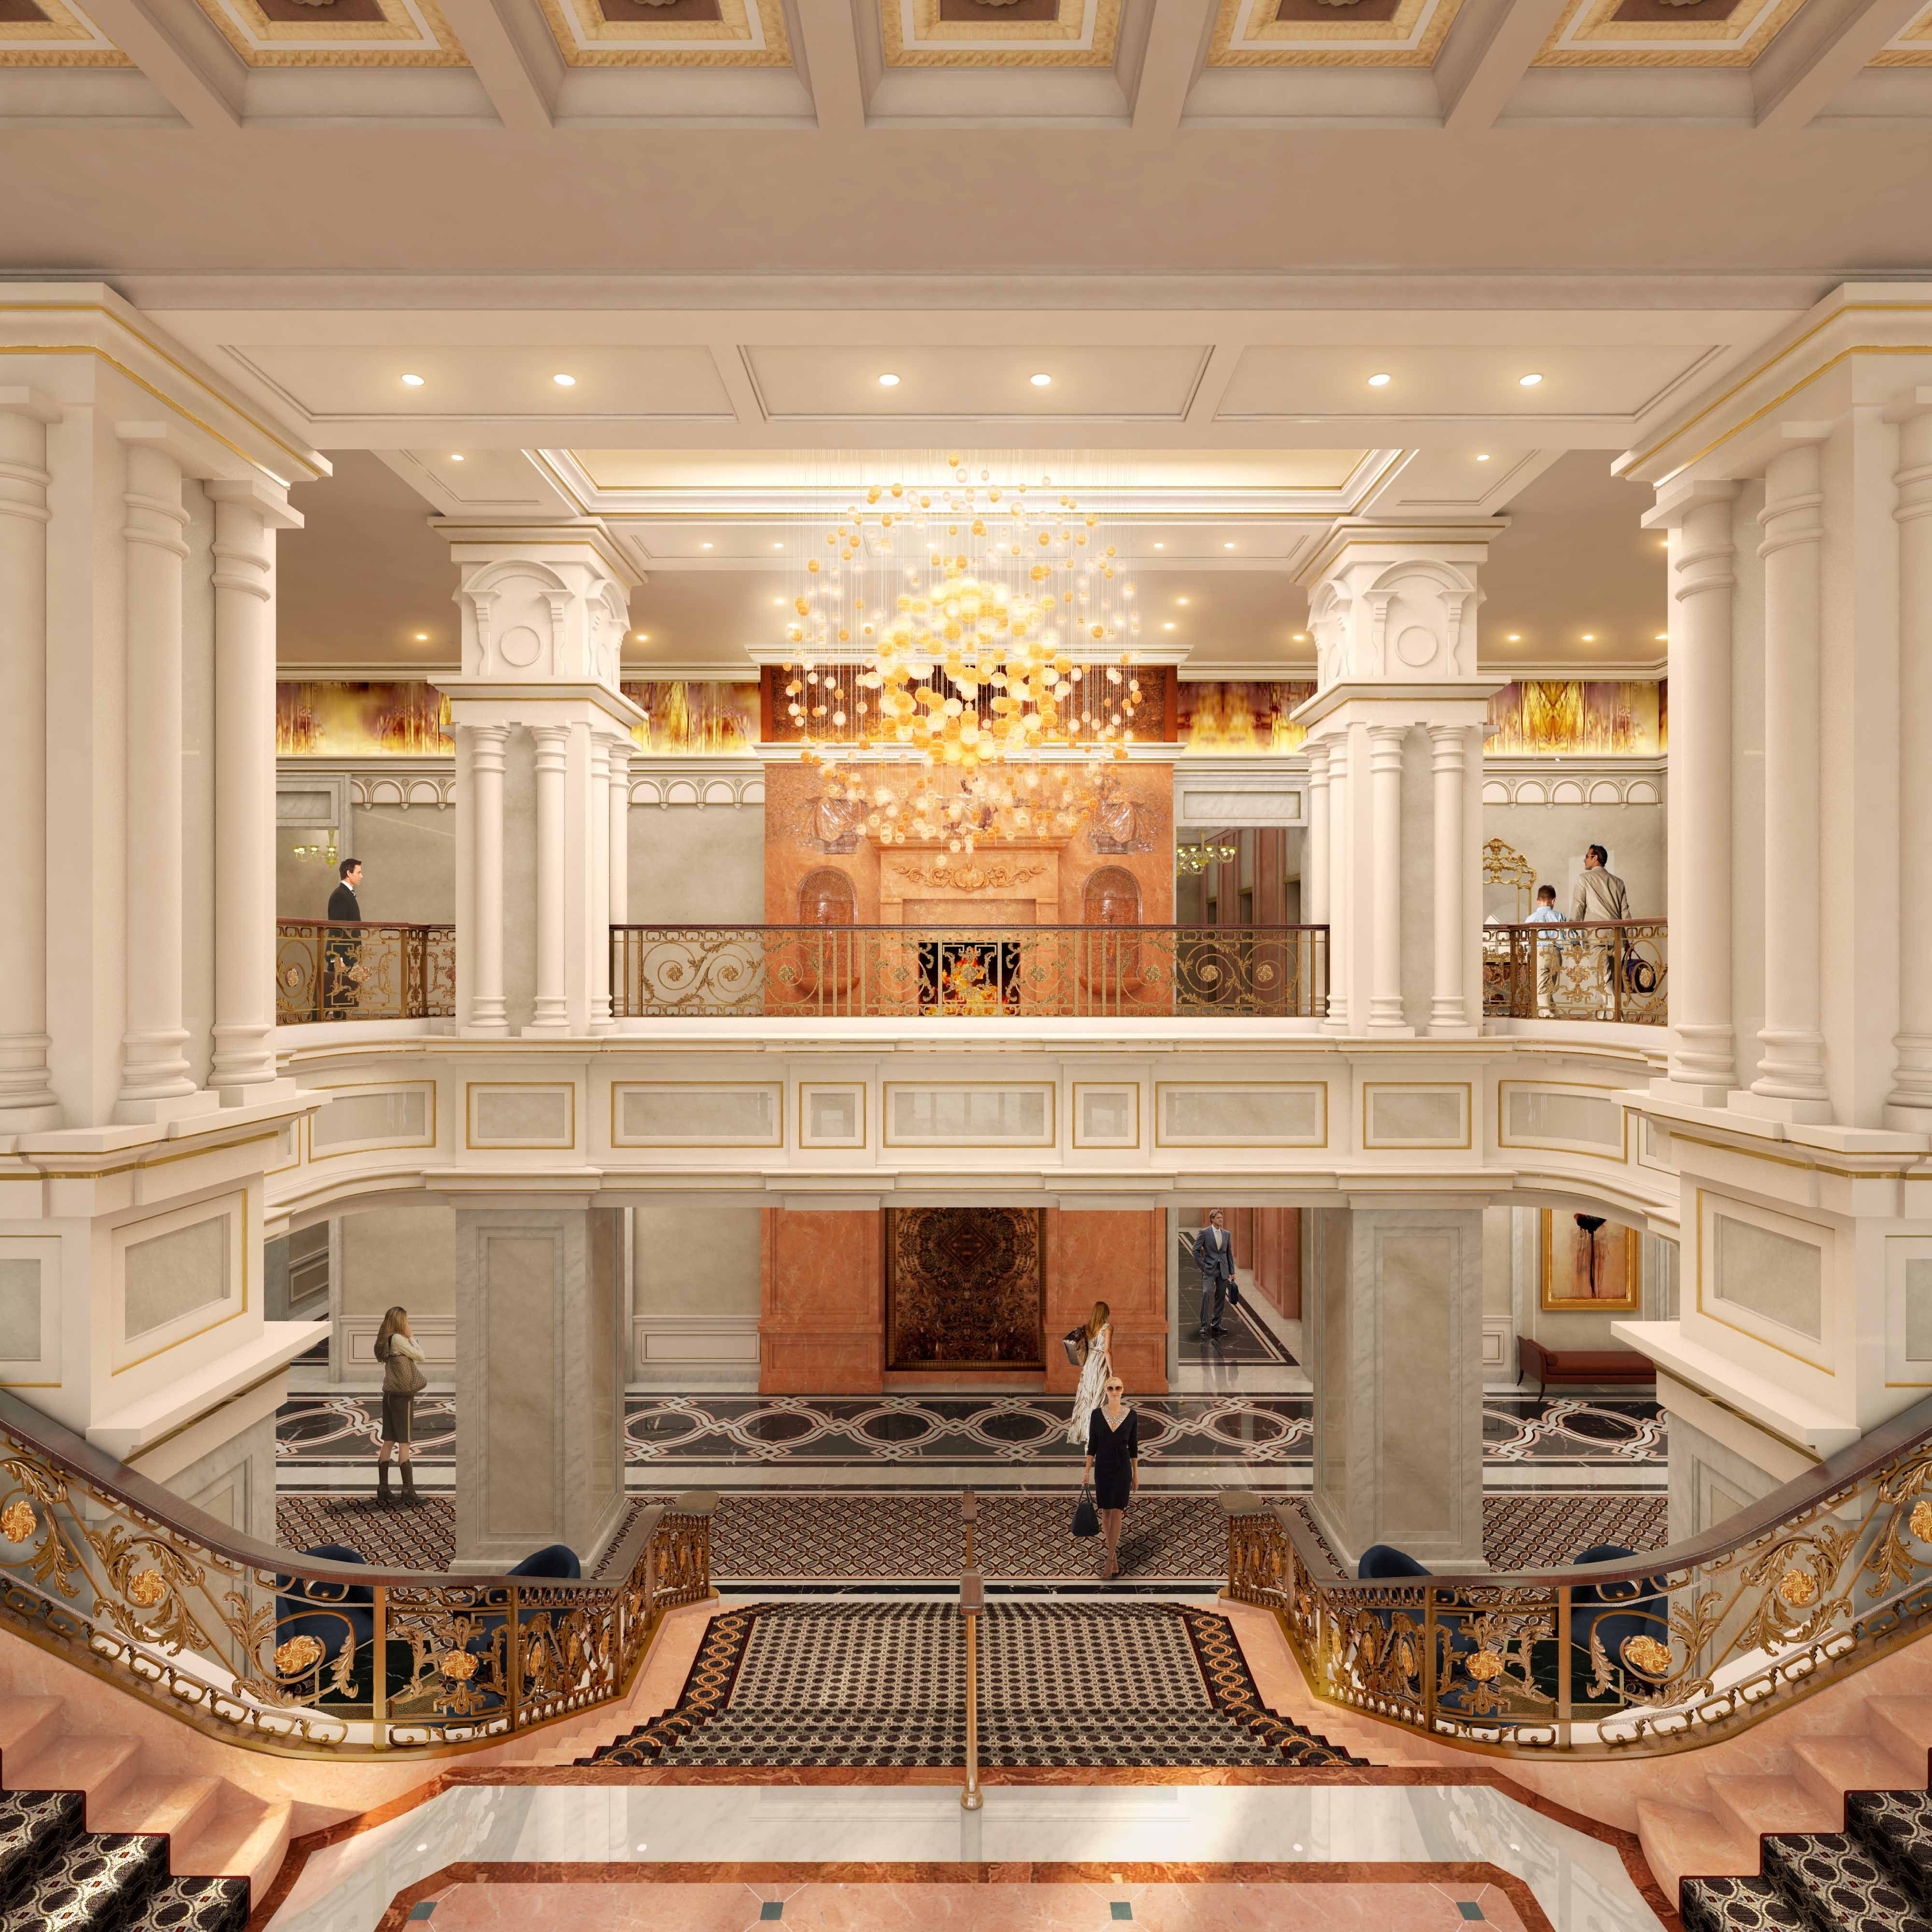 Explore palace hotel hotel lobby and more